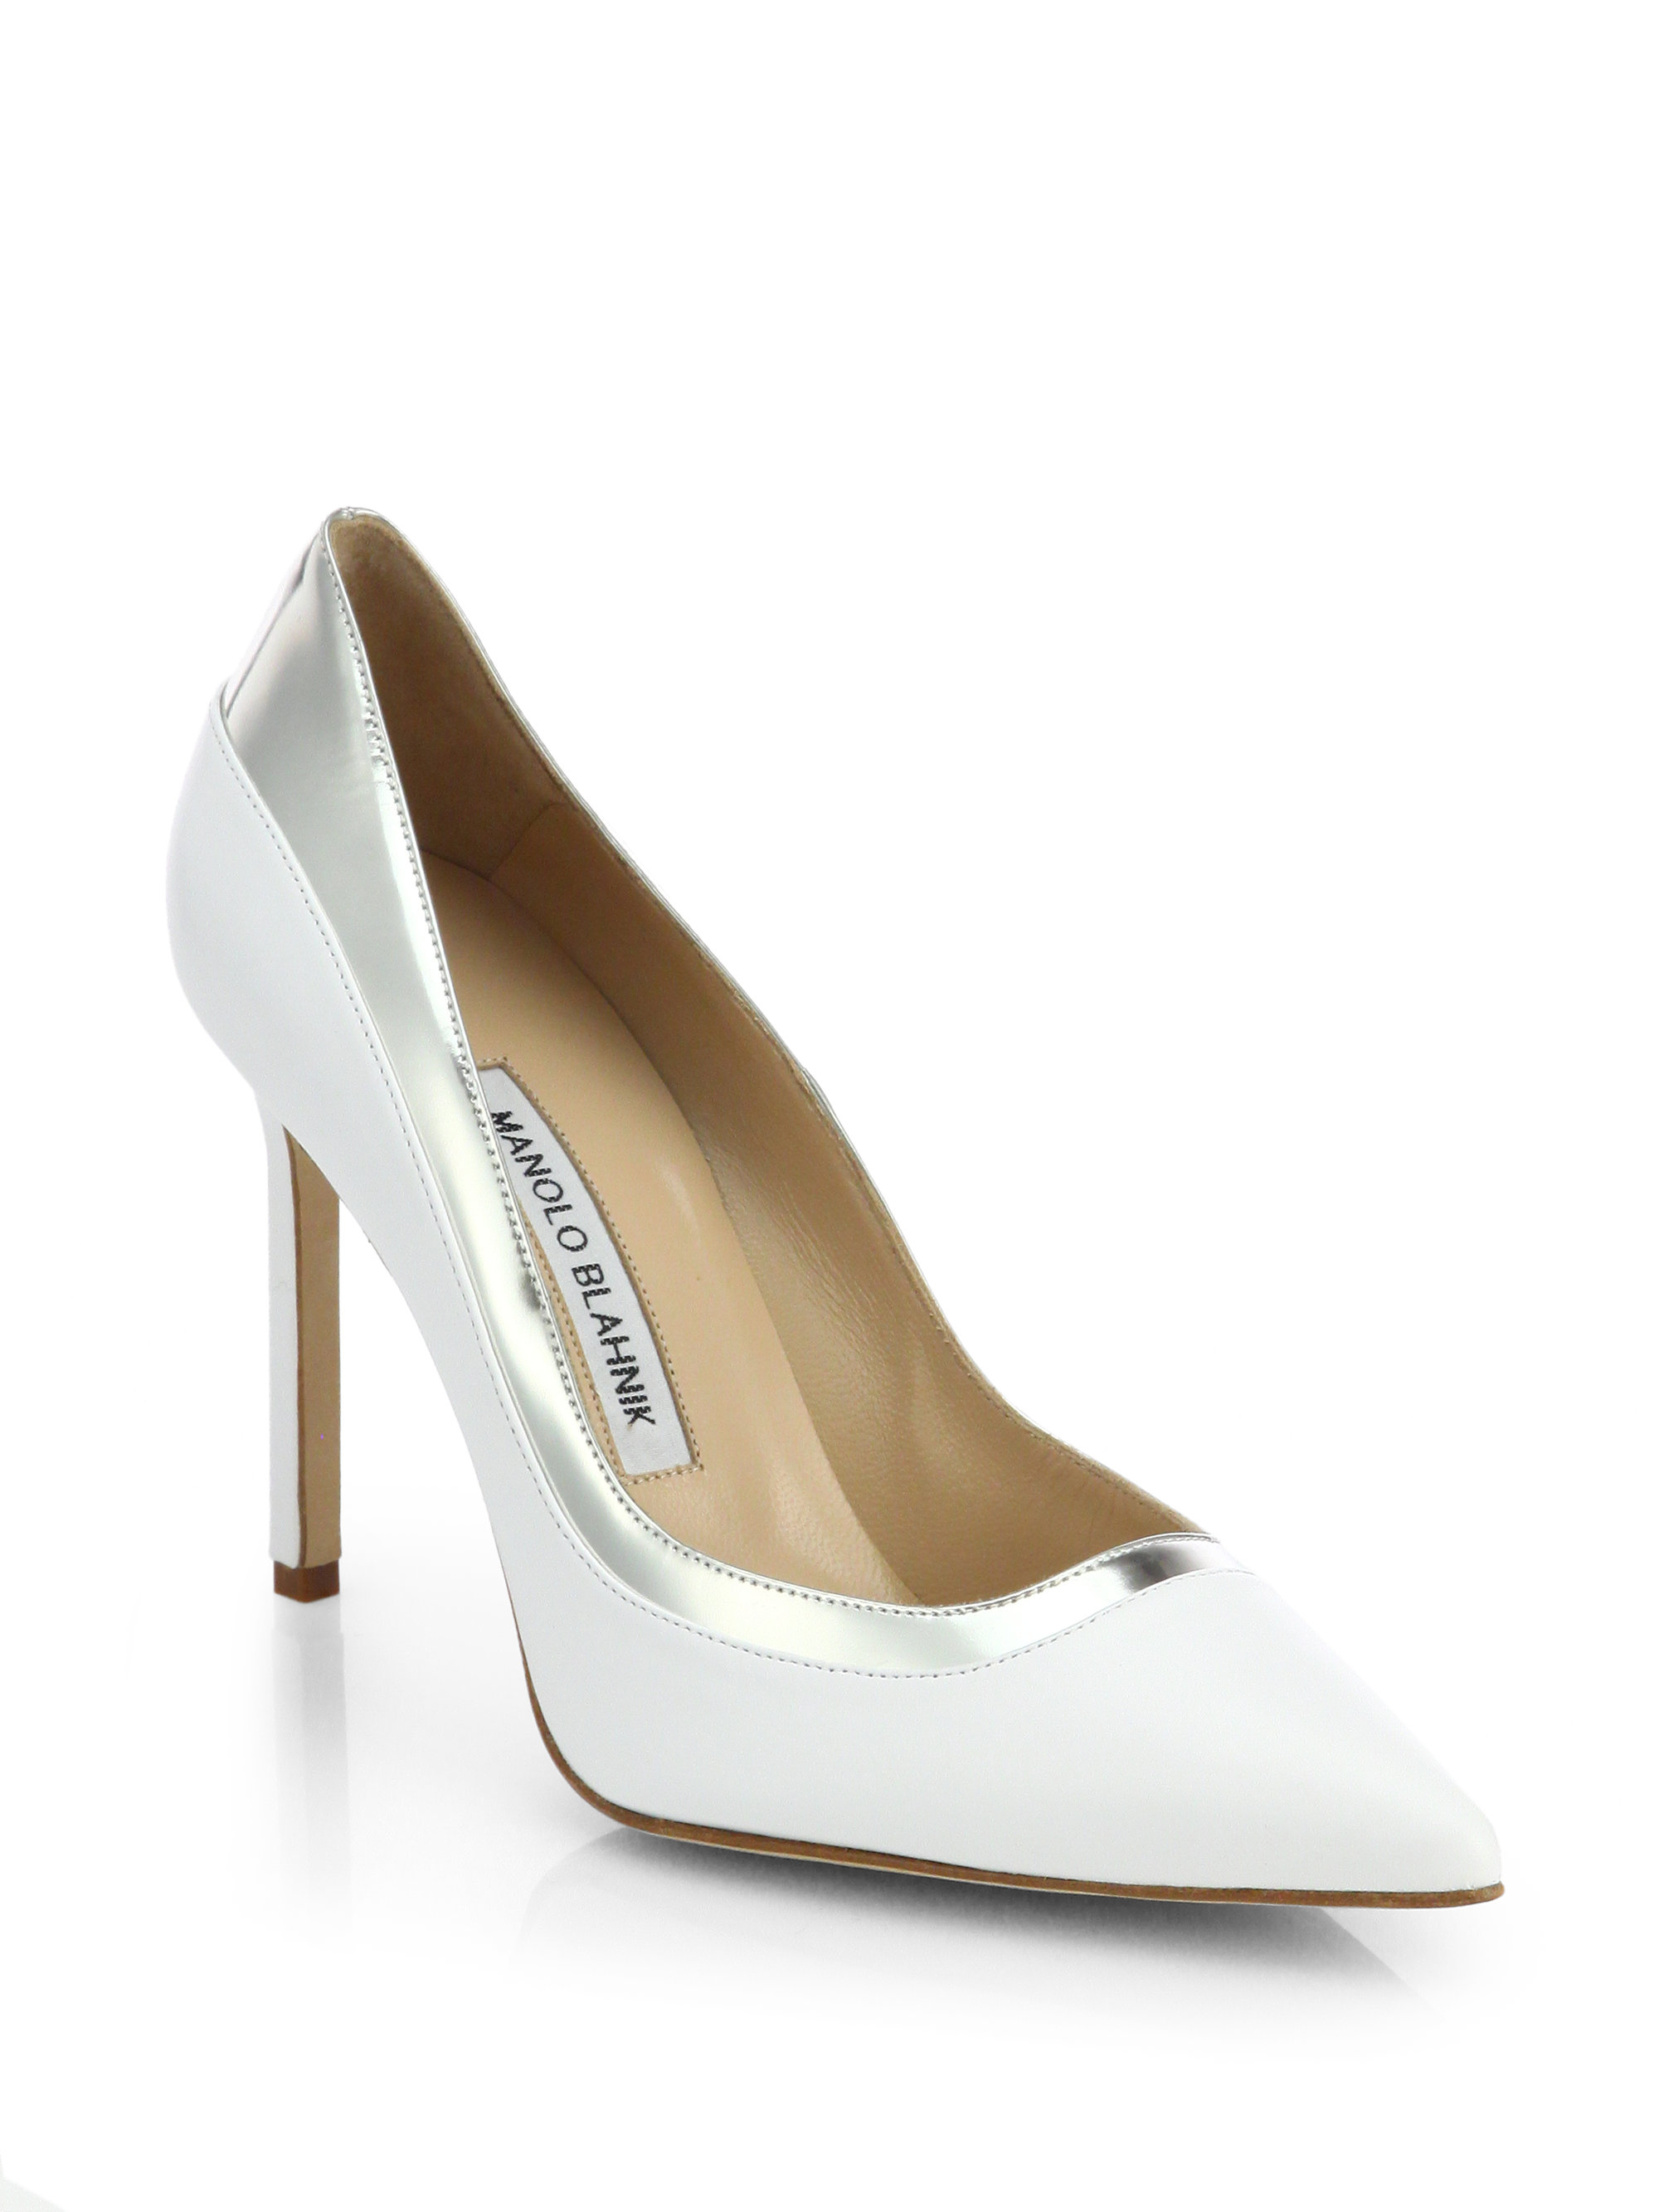 clearance factory outlet outlet footlocker Manolo Blahnik Bi-Color Pointed-Toe Pumps store looking for for sale 2lUbZwERoa